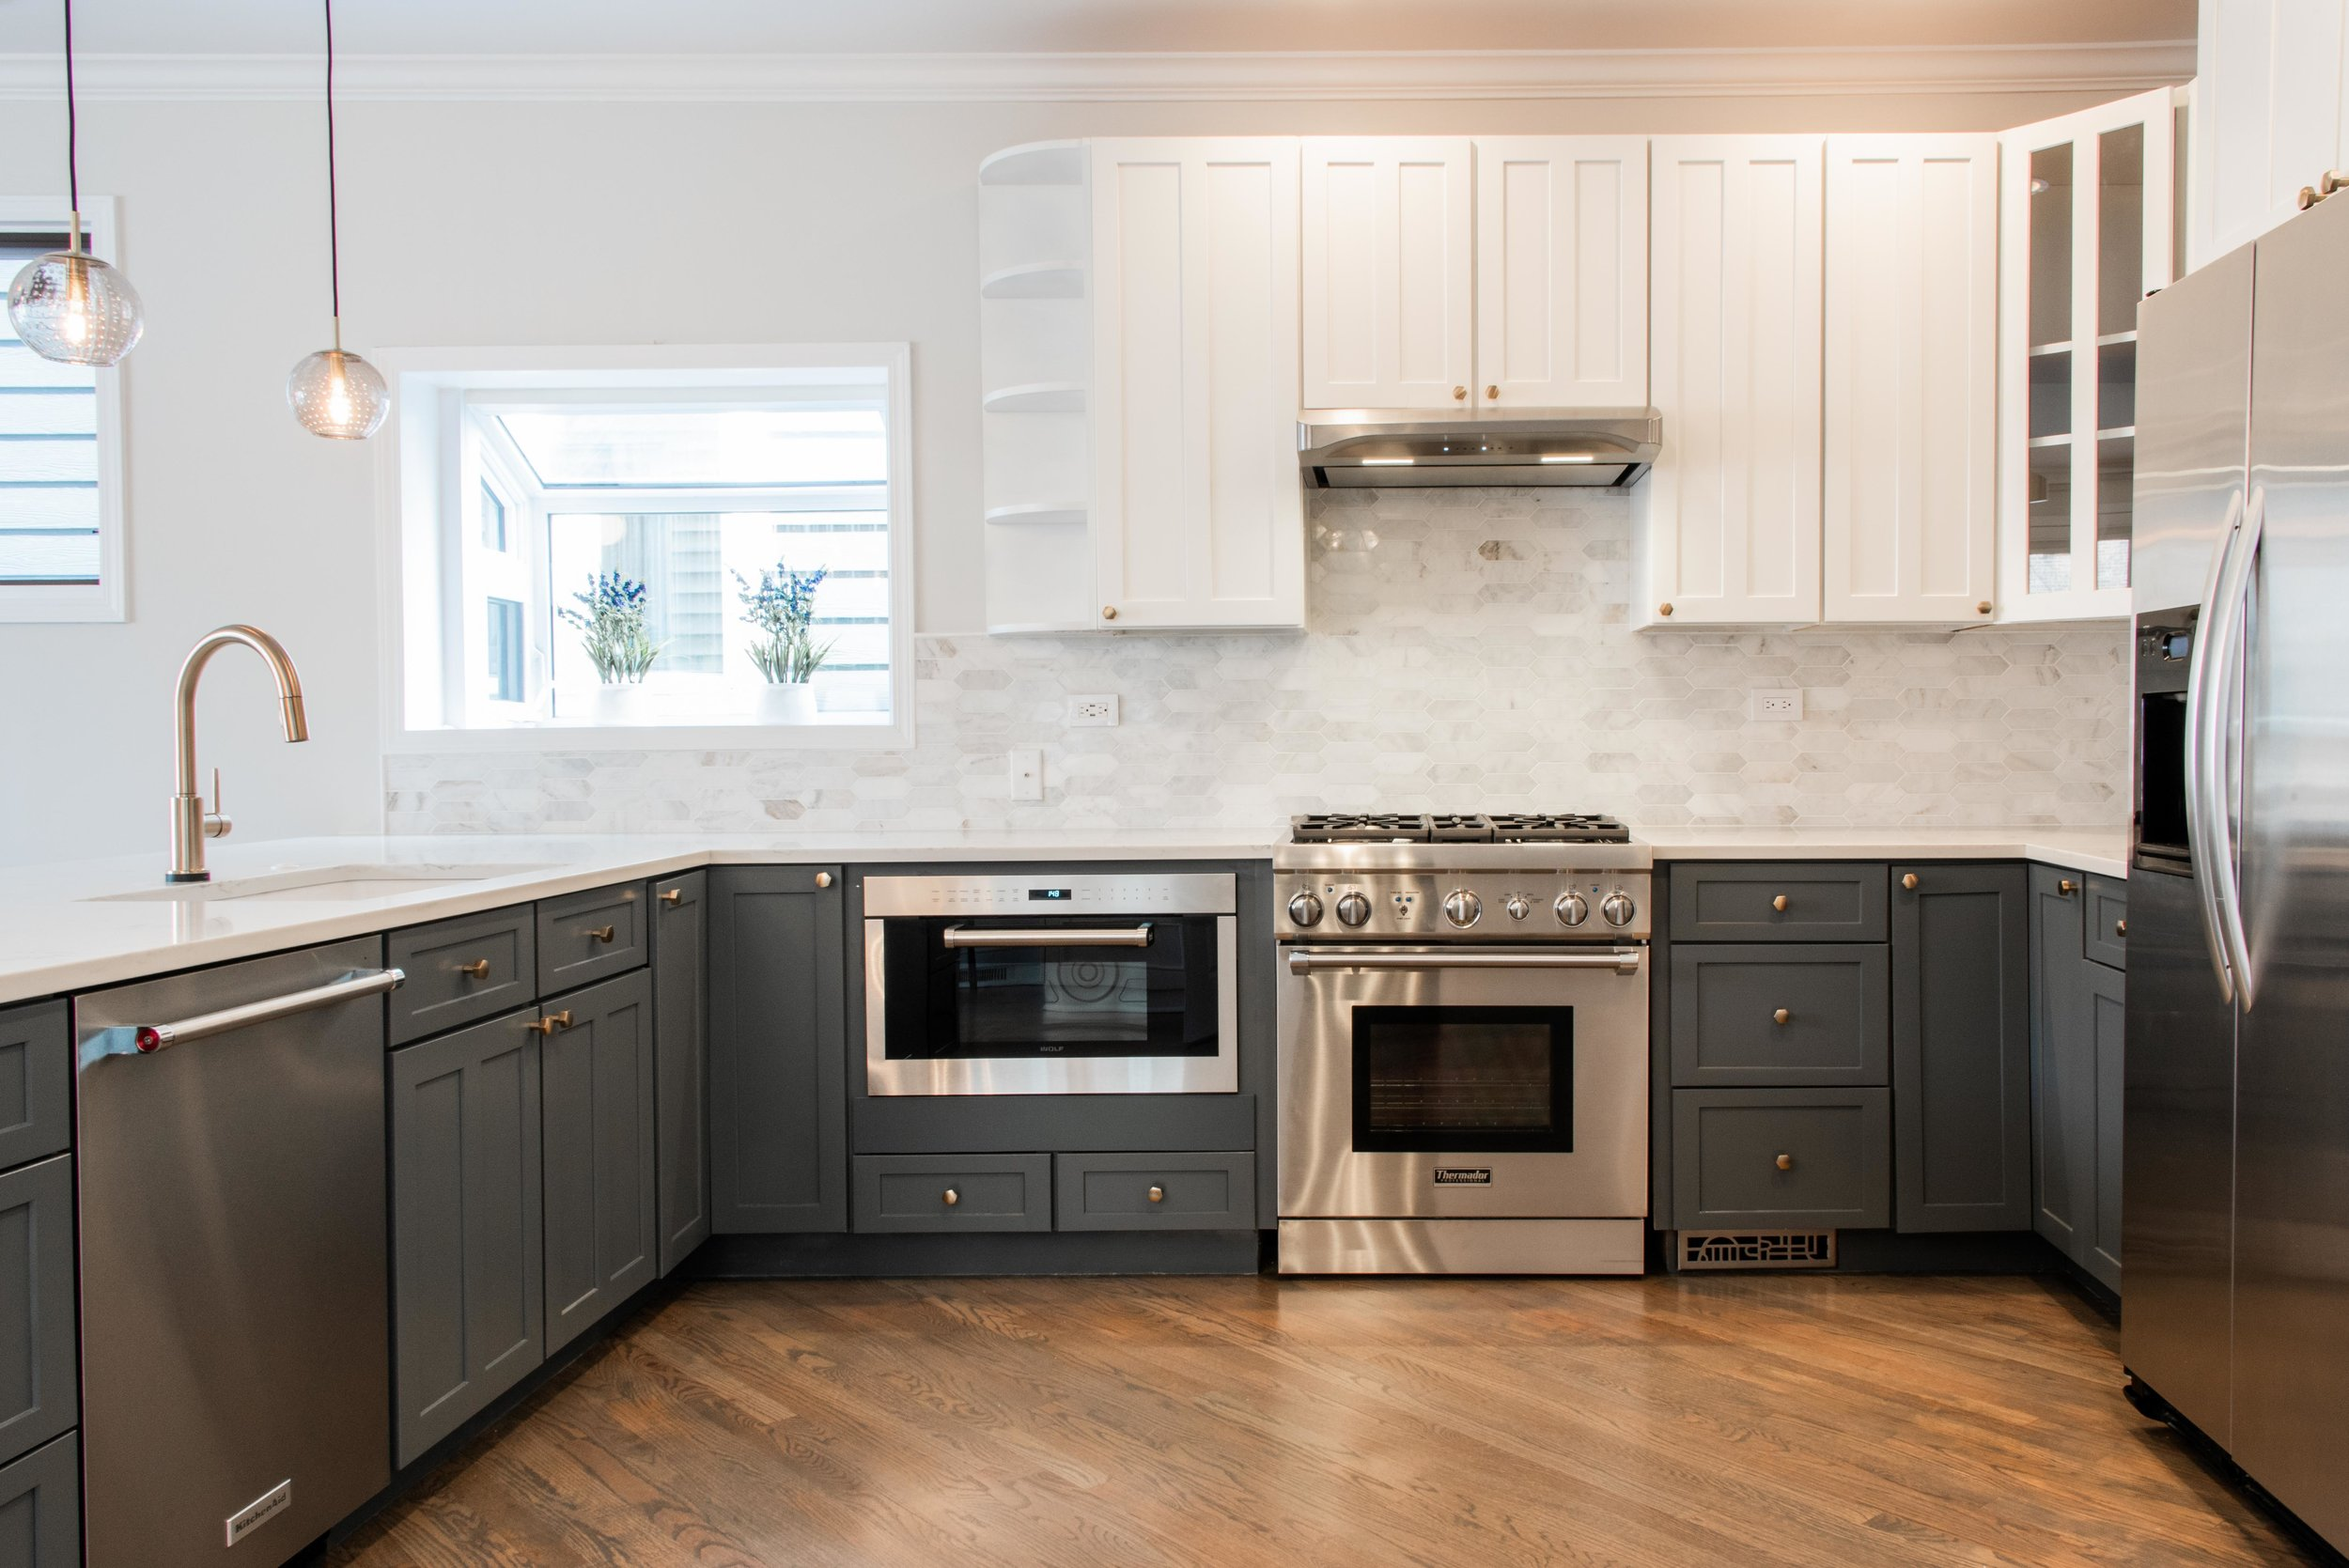 The refinished cabinets, with a new range and under-counter microwave, countertops, backsplash and lighting.